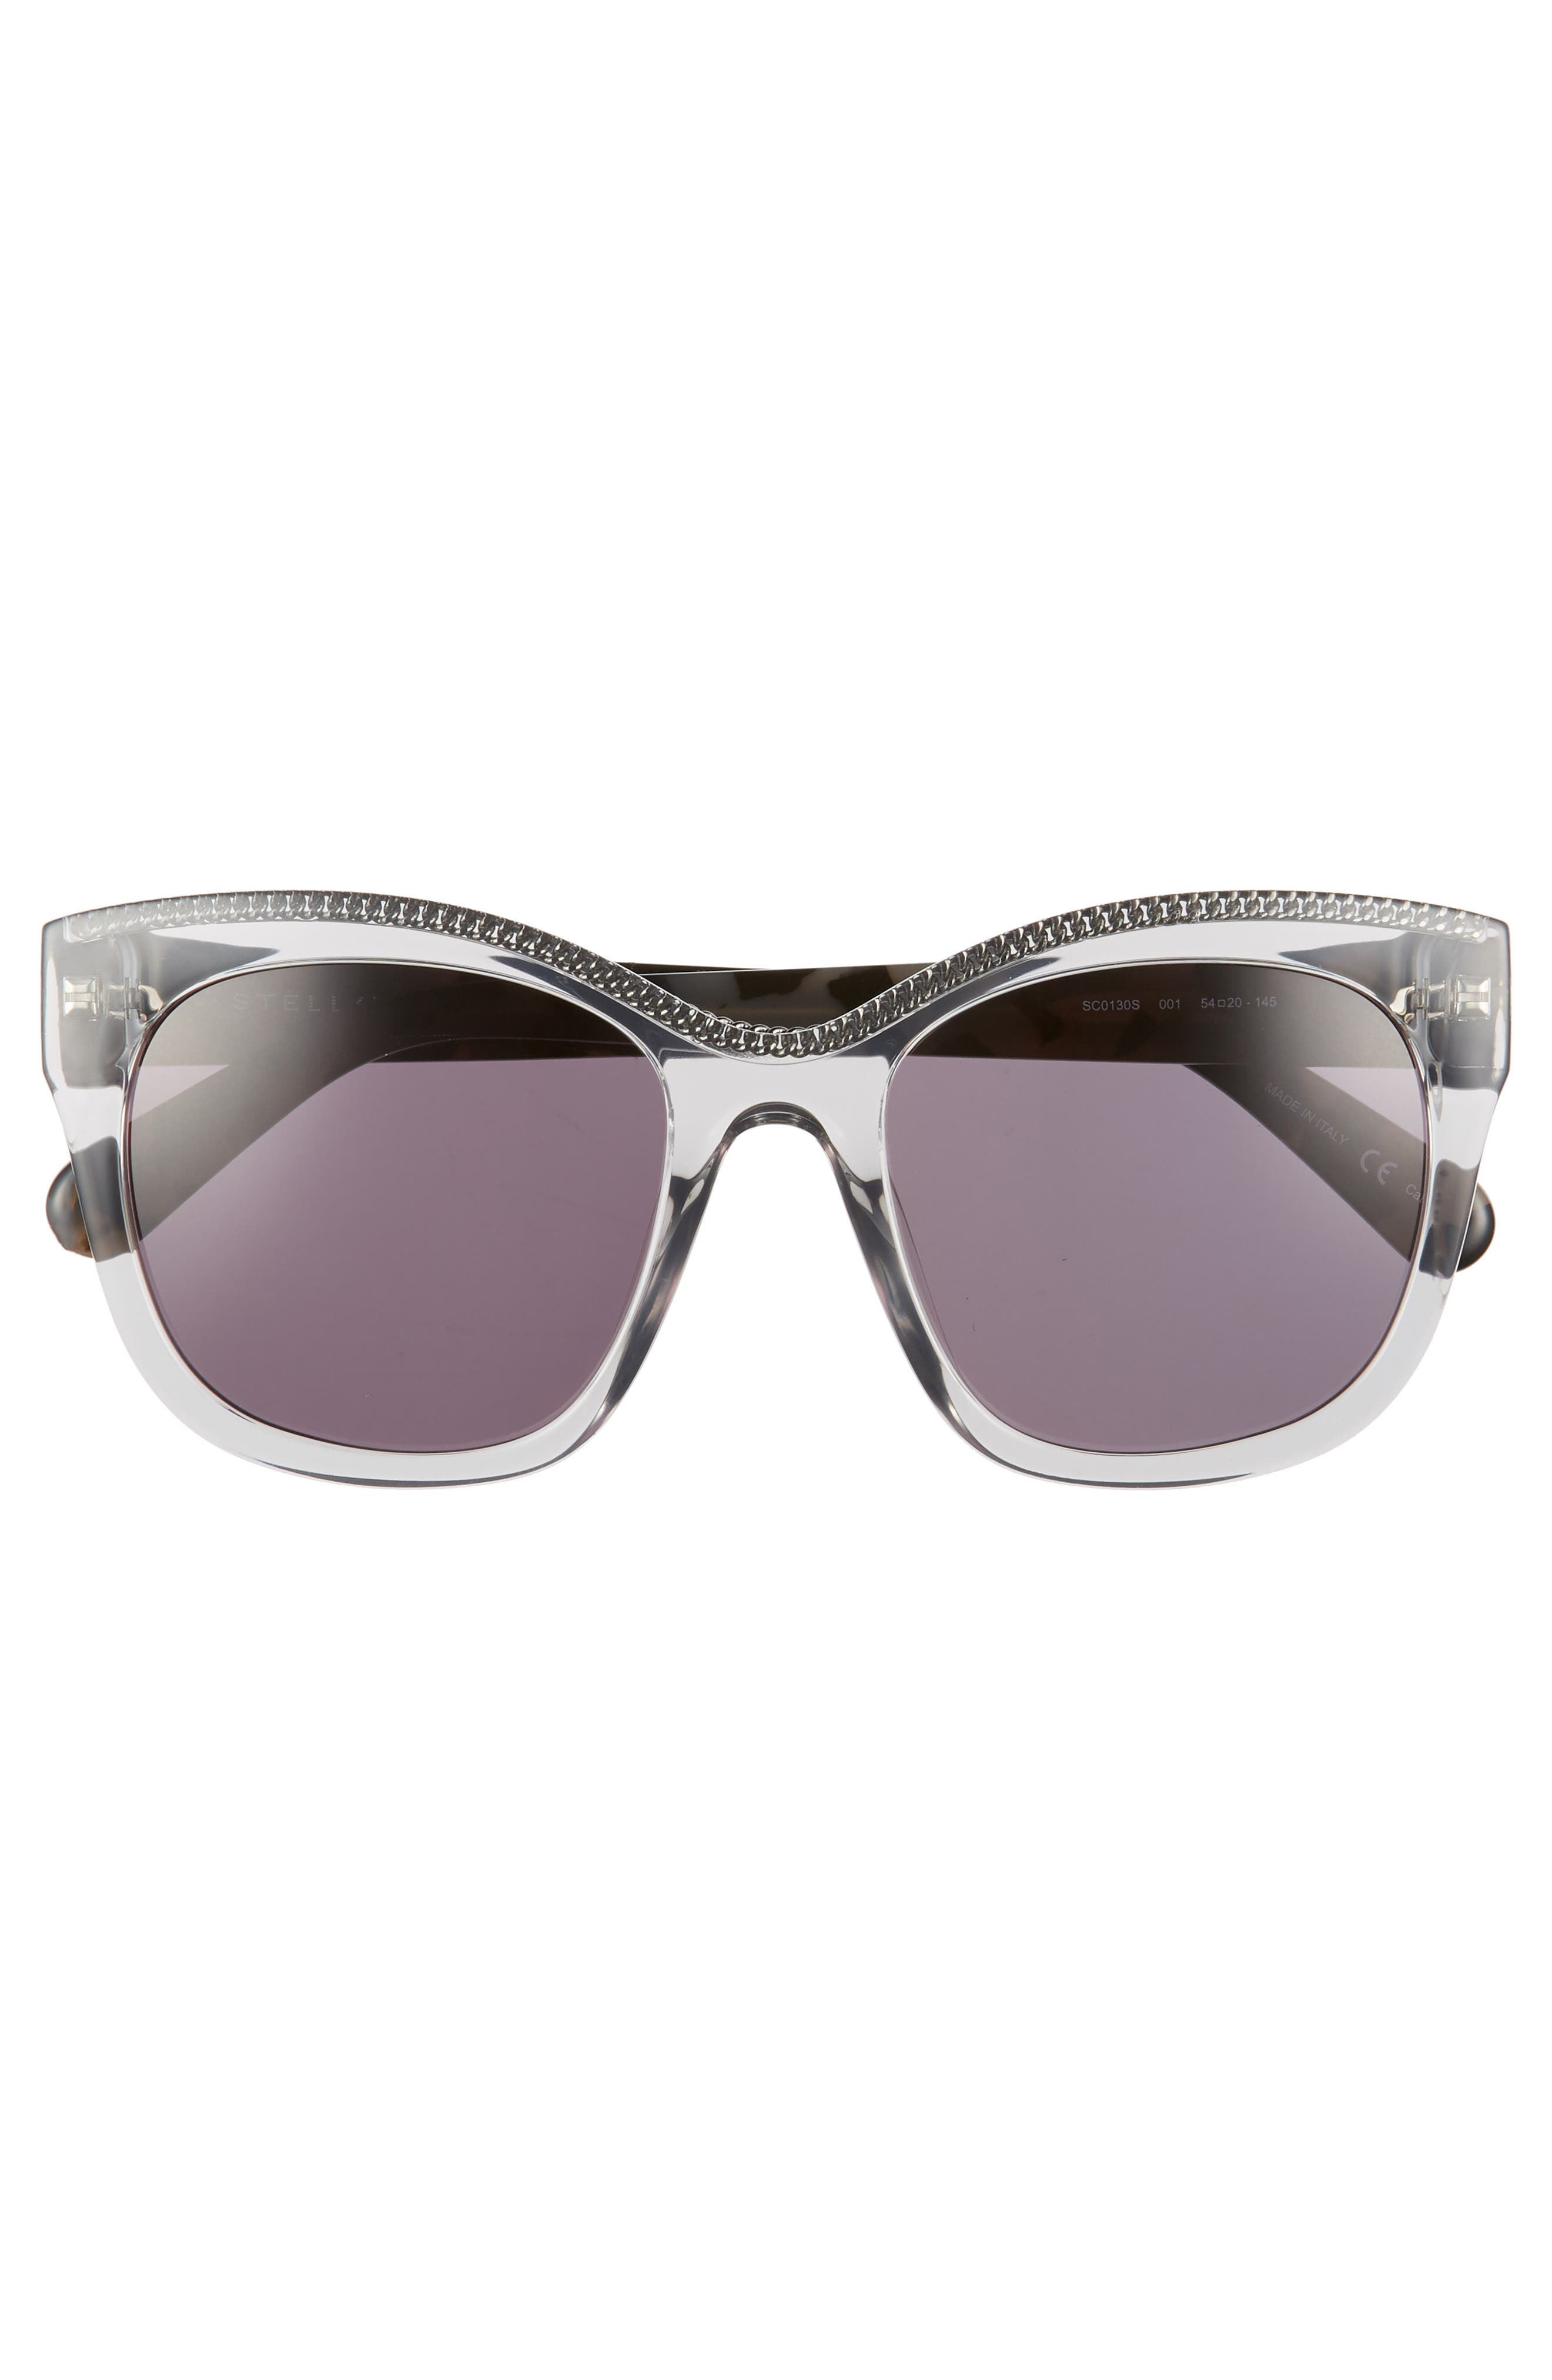 54mm Sunglasses,                             Alternate thumbnail 3, color,                             GREY HAVANA